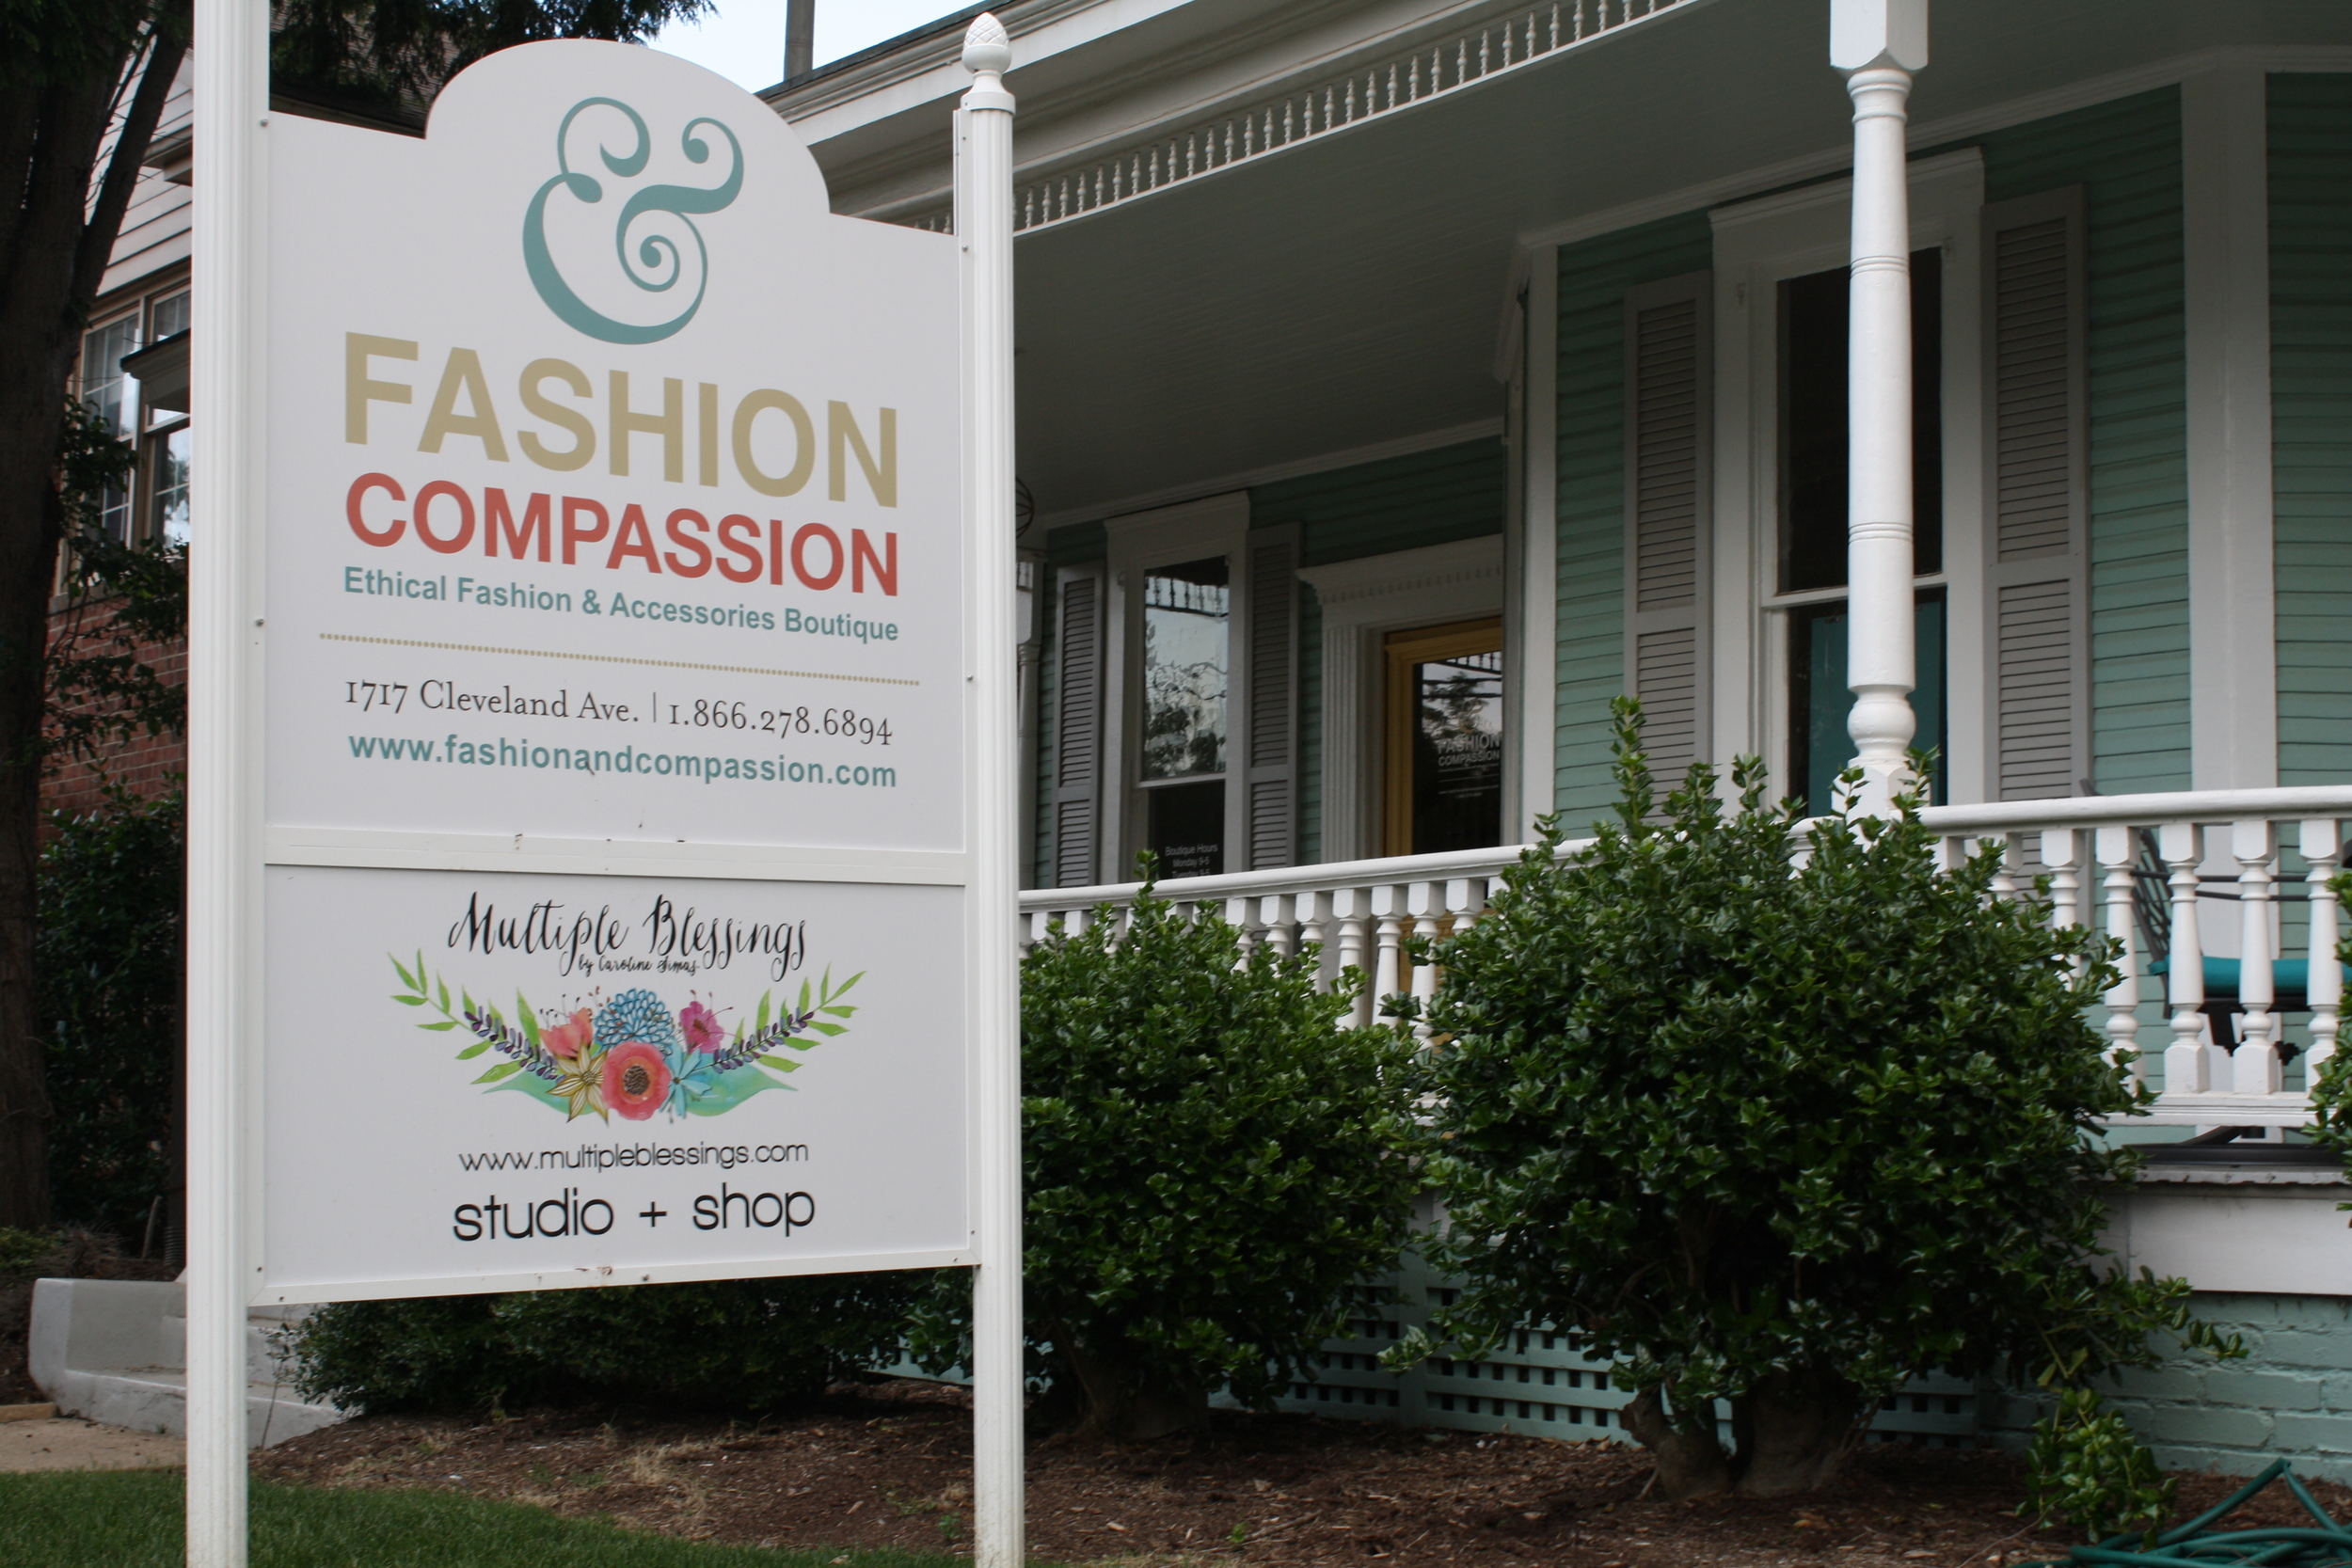 Fashion & Compassion offices are also home to local artist, Caroline Simas, who also displays her art in the boutique.